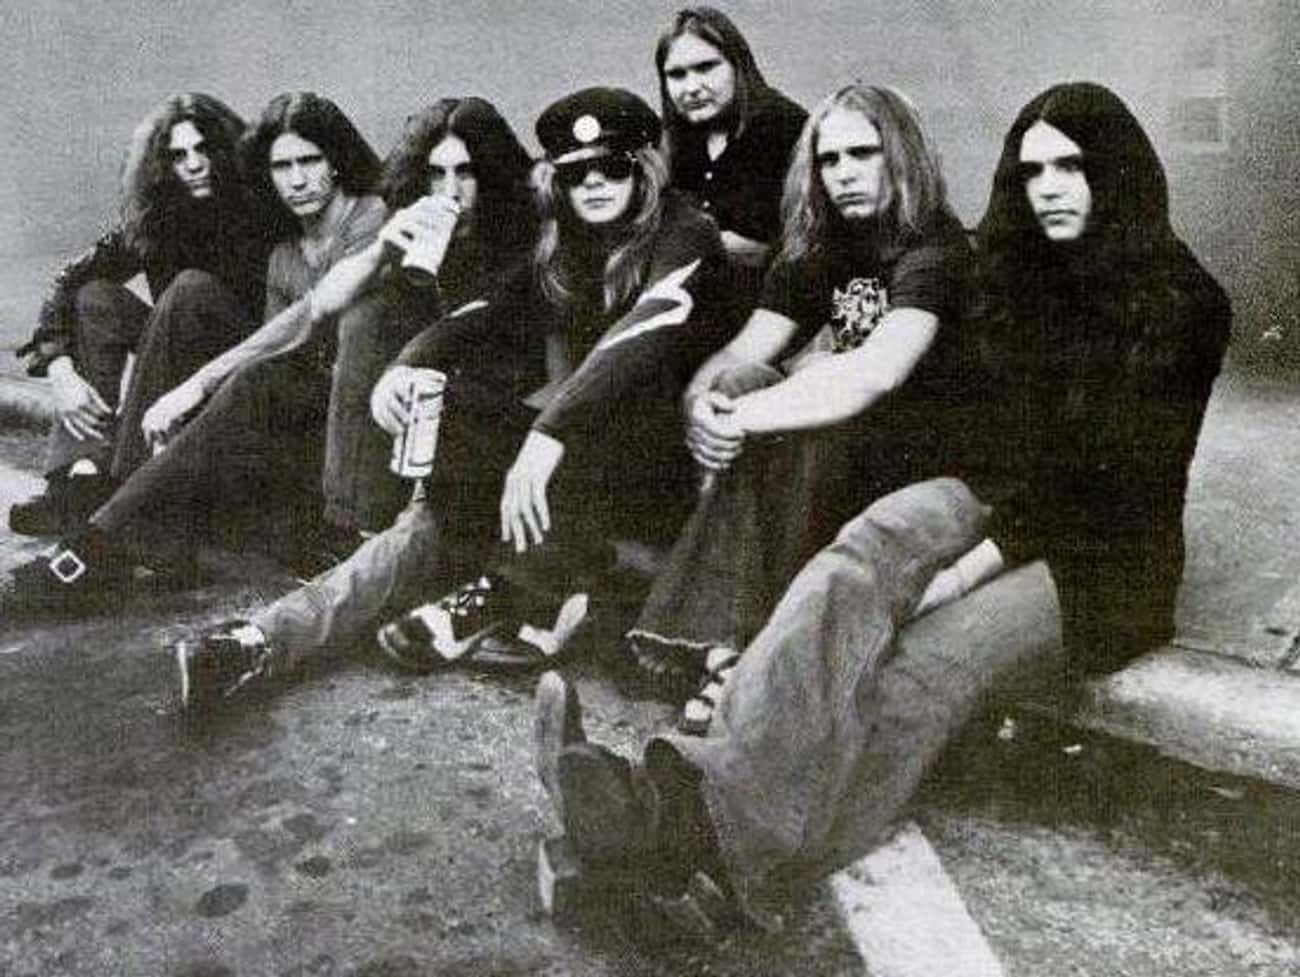 Survivors Sued To Keep A Film  is listed (or ranked) 1 on the list Falling Free Bird: The Truth About The Infamous Lynyrd Skynyrd Plane Crash Is Stranger Than Fiction